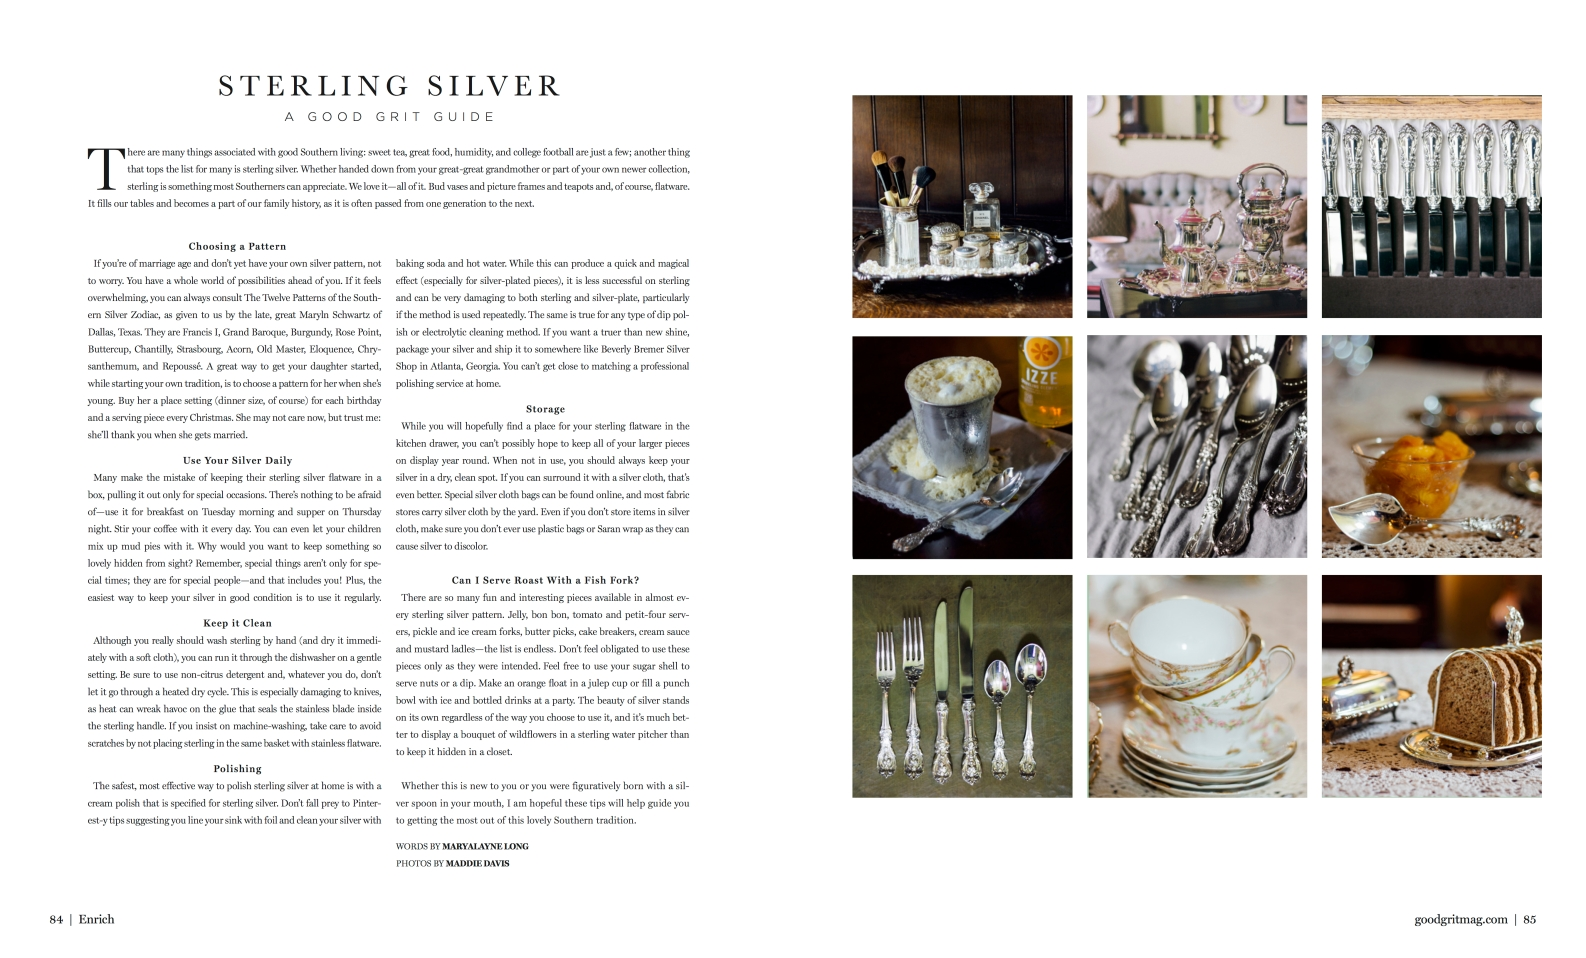 Guide to Sterling Silver.jpg